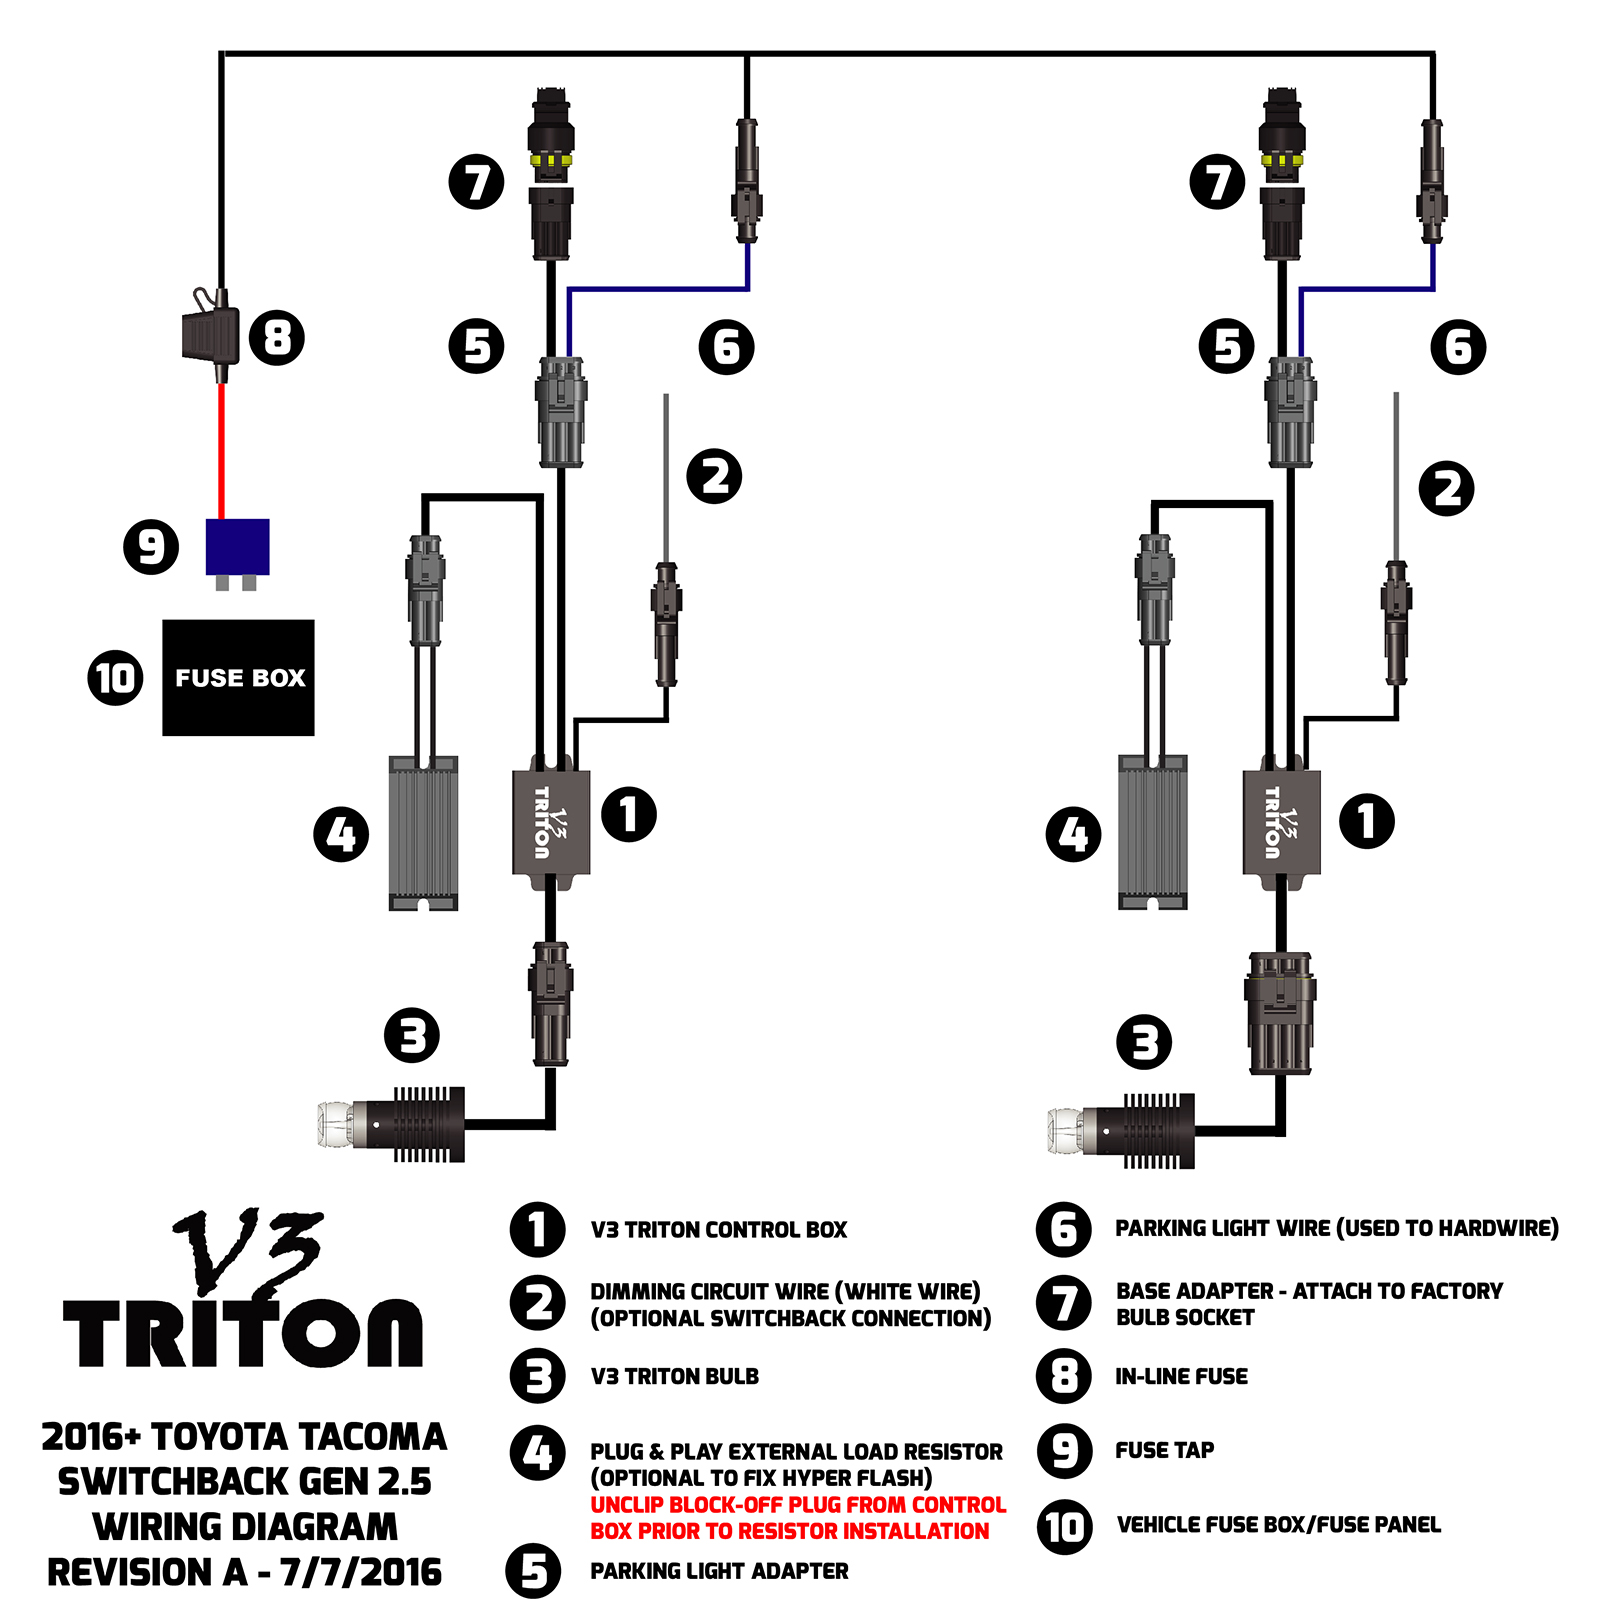 hight resolution of 2016 toyota tacoma switchback